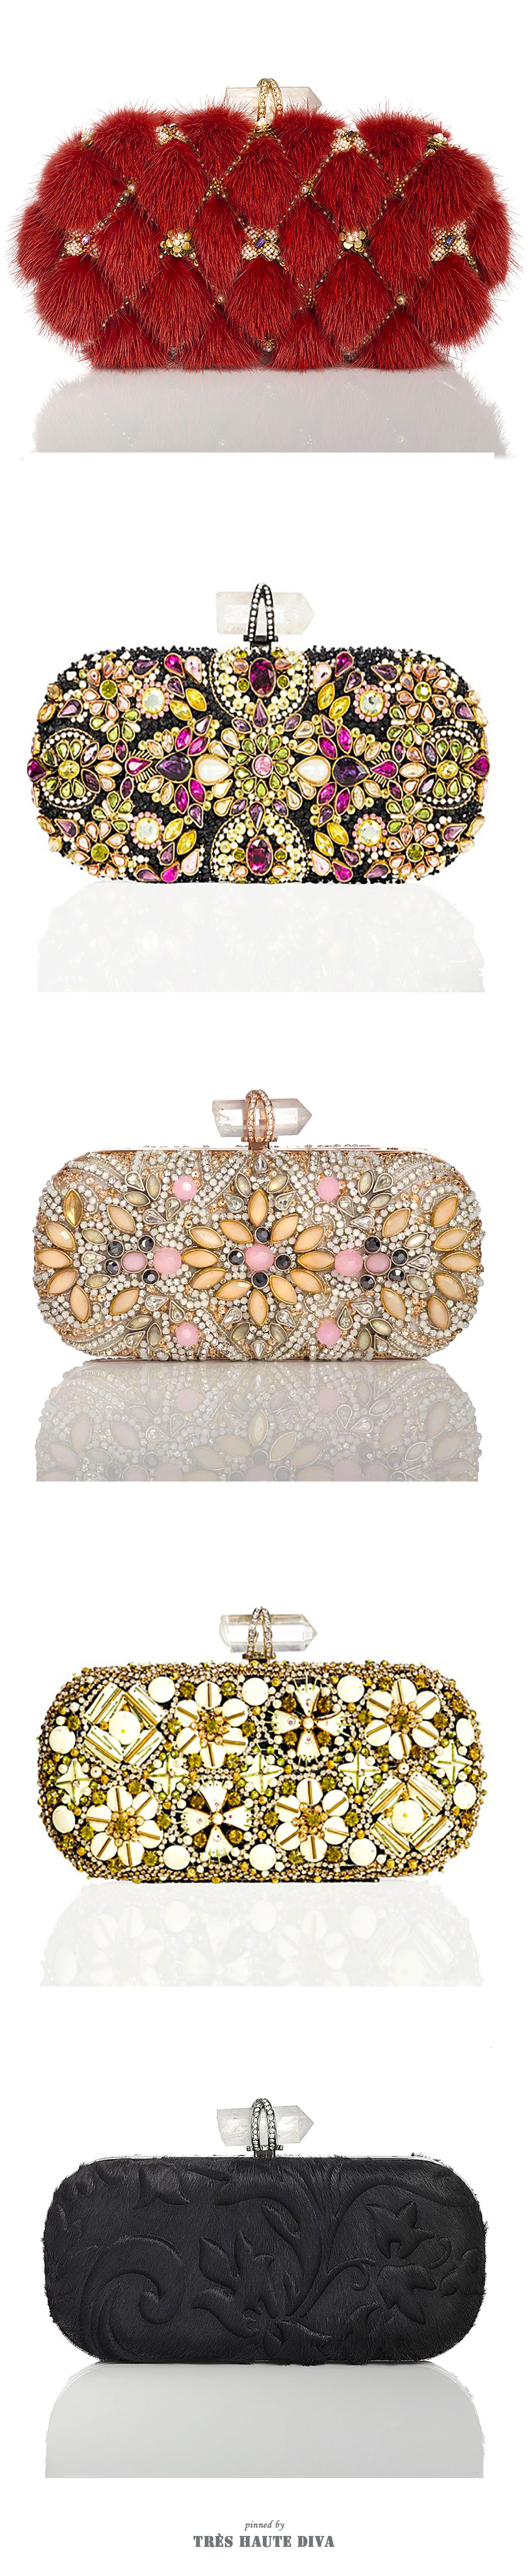 Marchesa Resort 2015 & Fall 2014 Evening Clutches